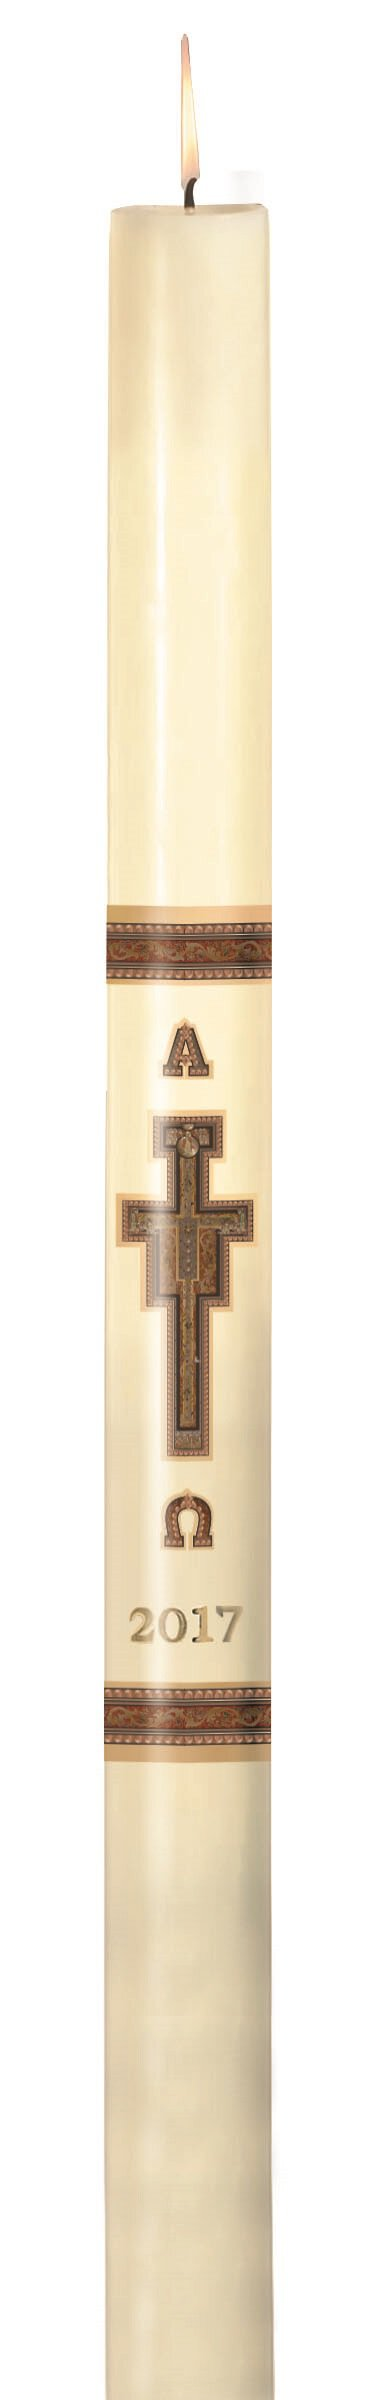 No 4 Special San Damiano Paschal Candle